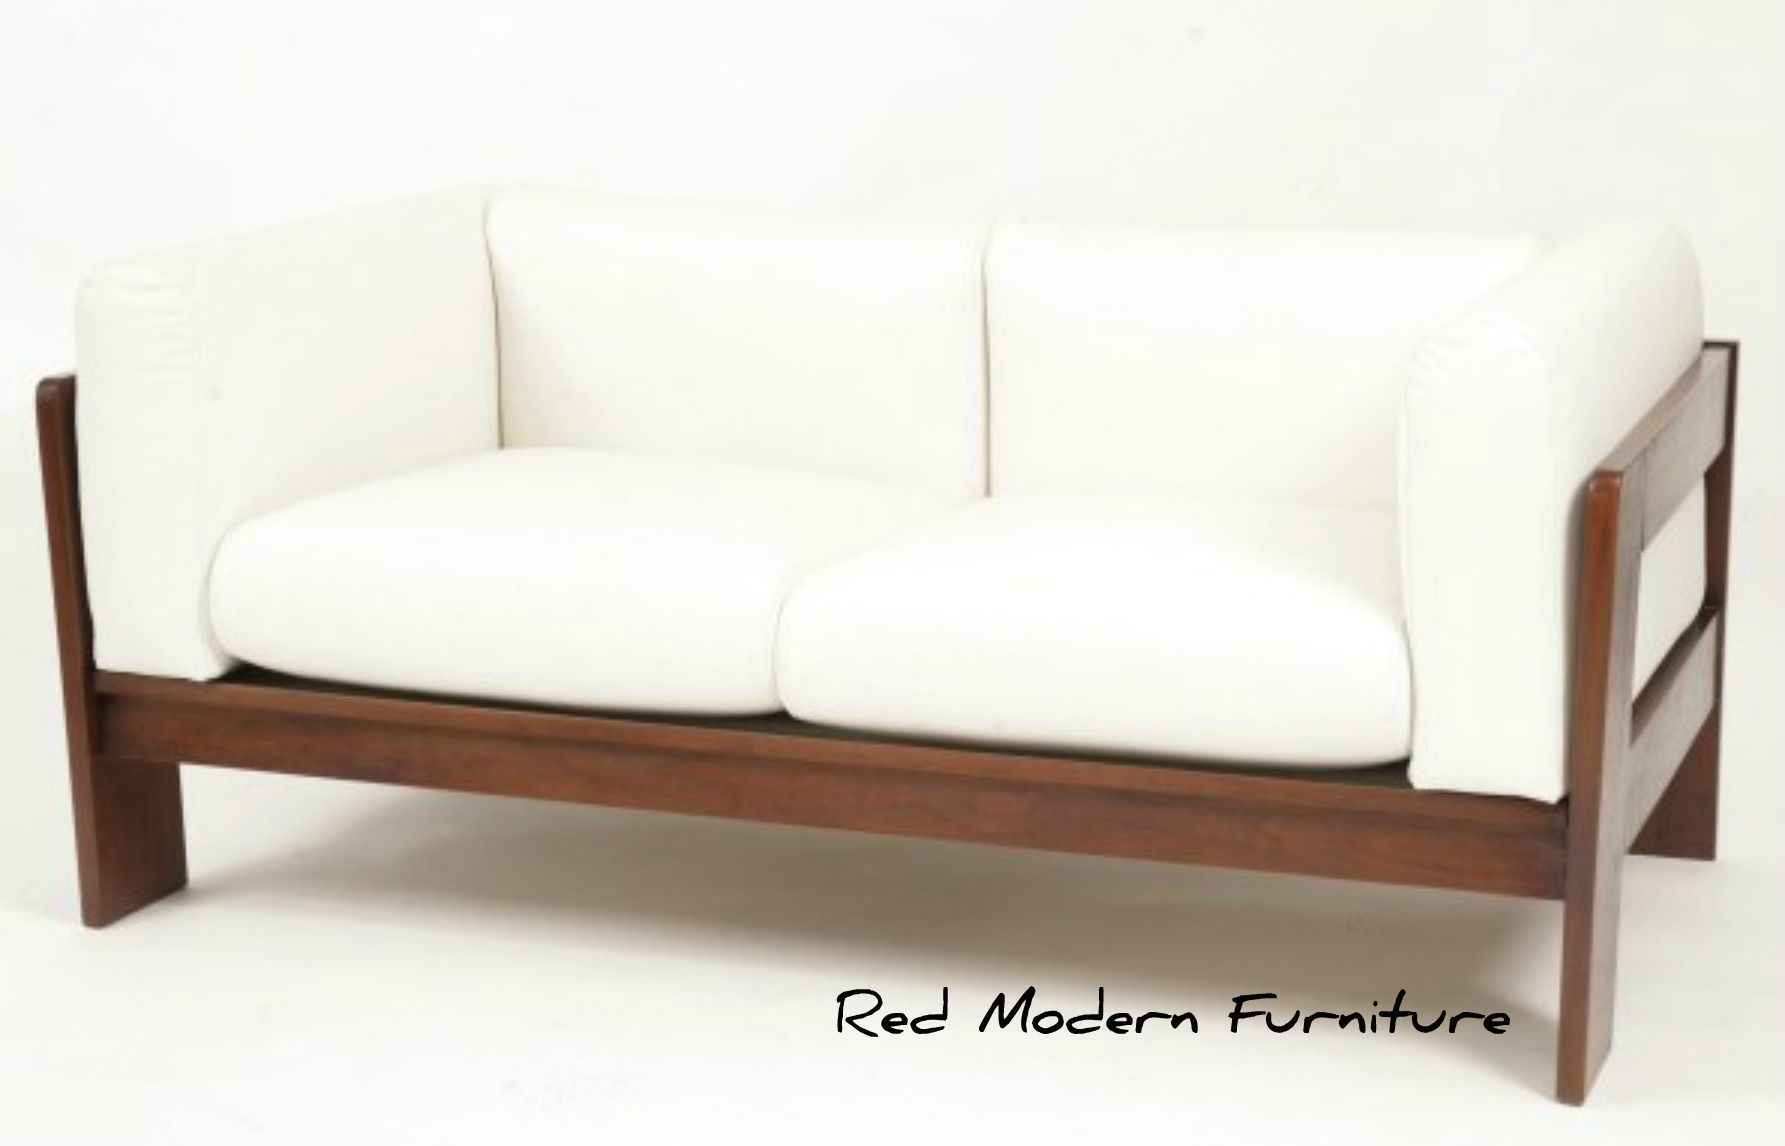 Leather sofa courtney out loud for Wooden furniture design